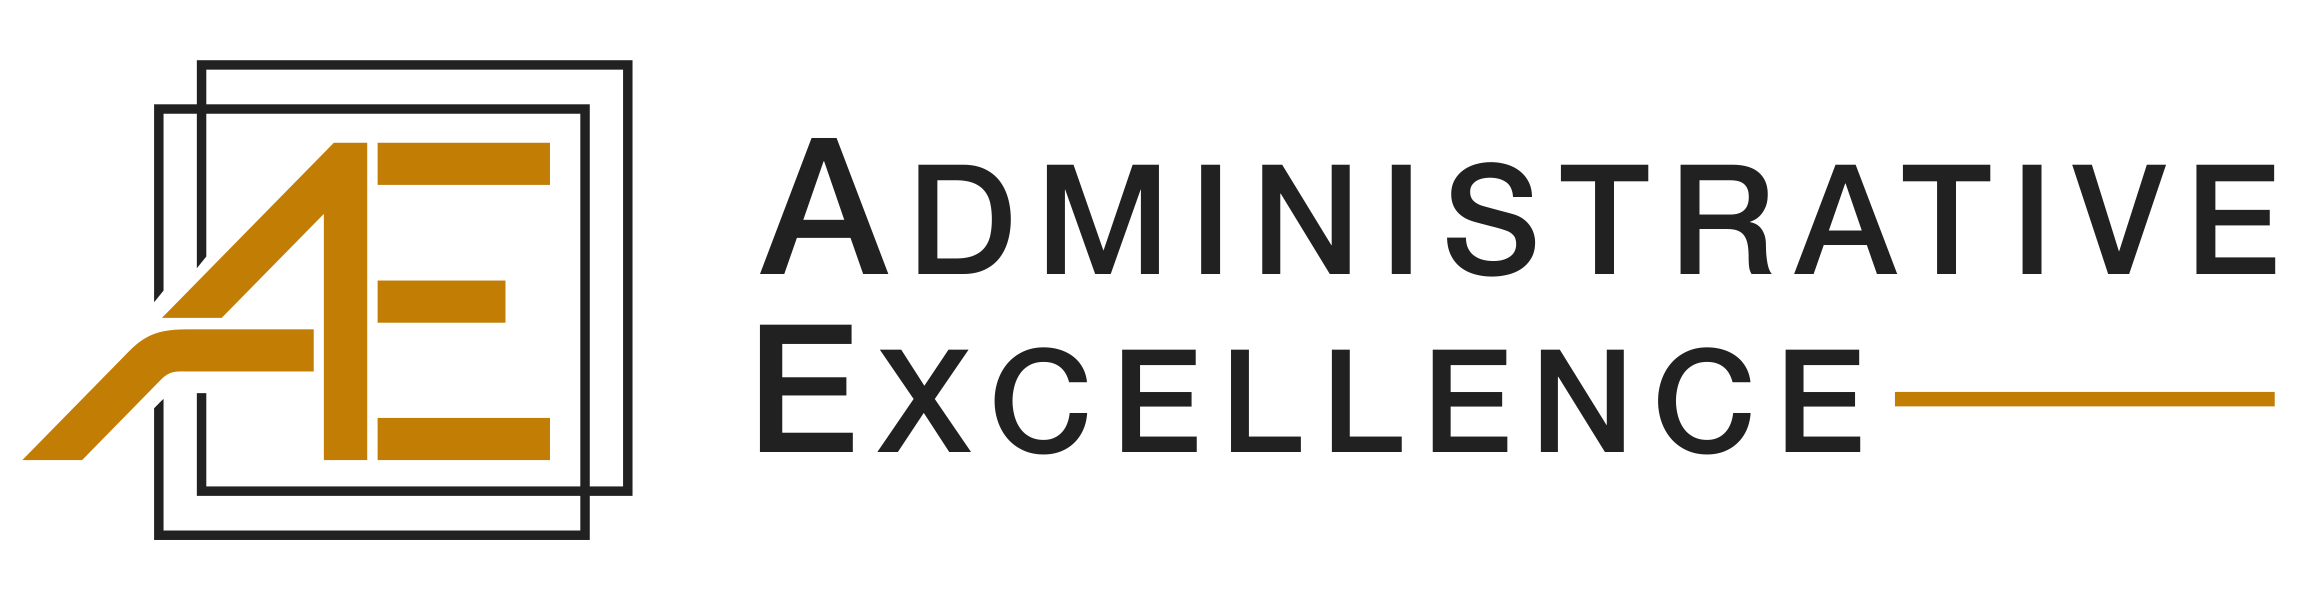 Administrative Excellence